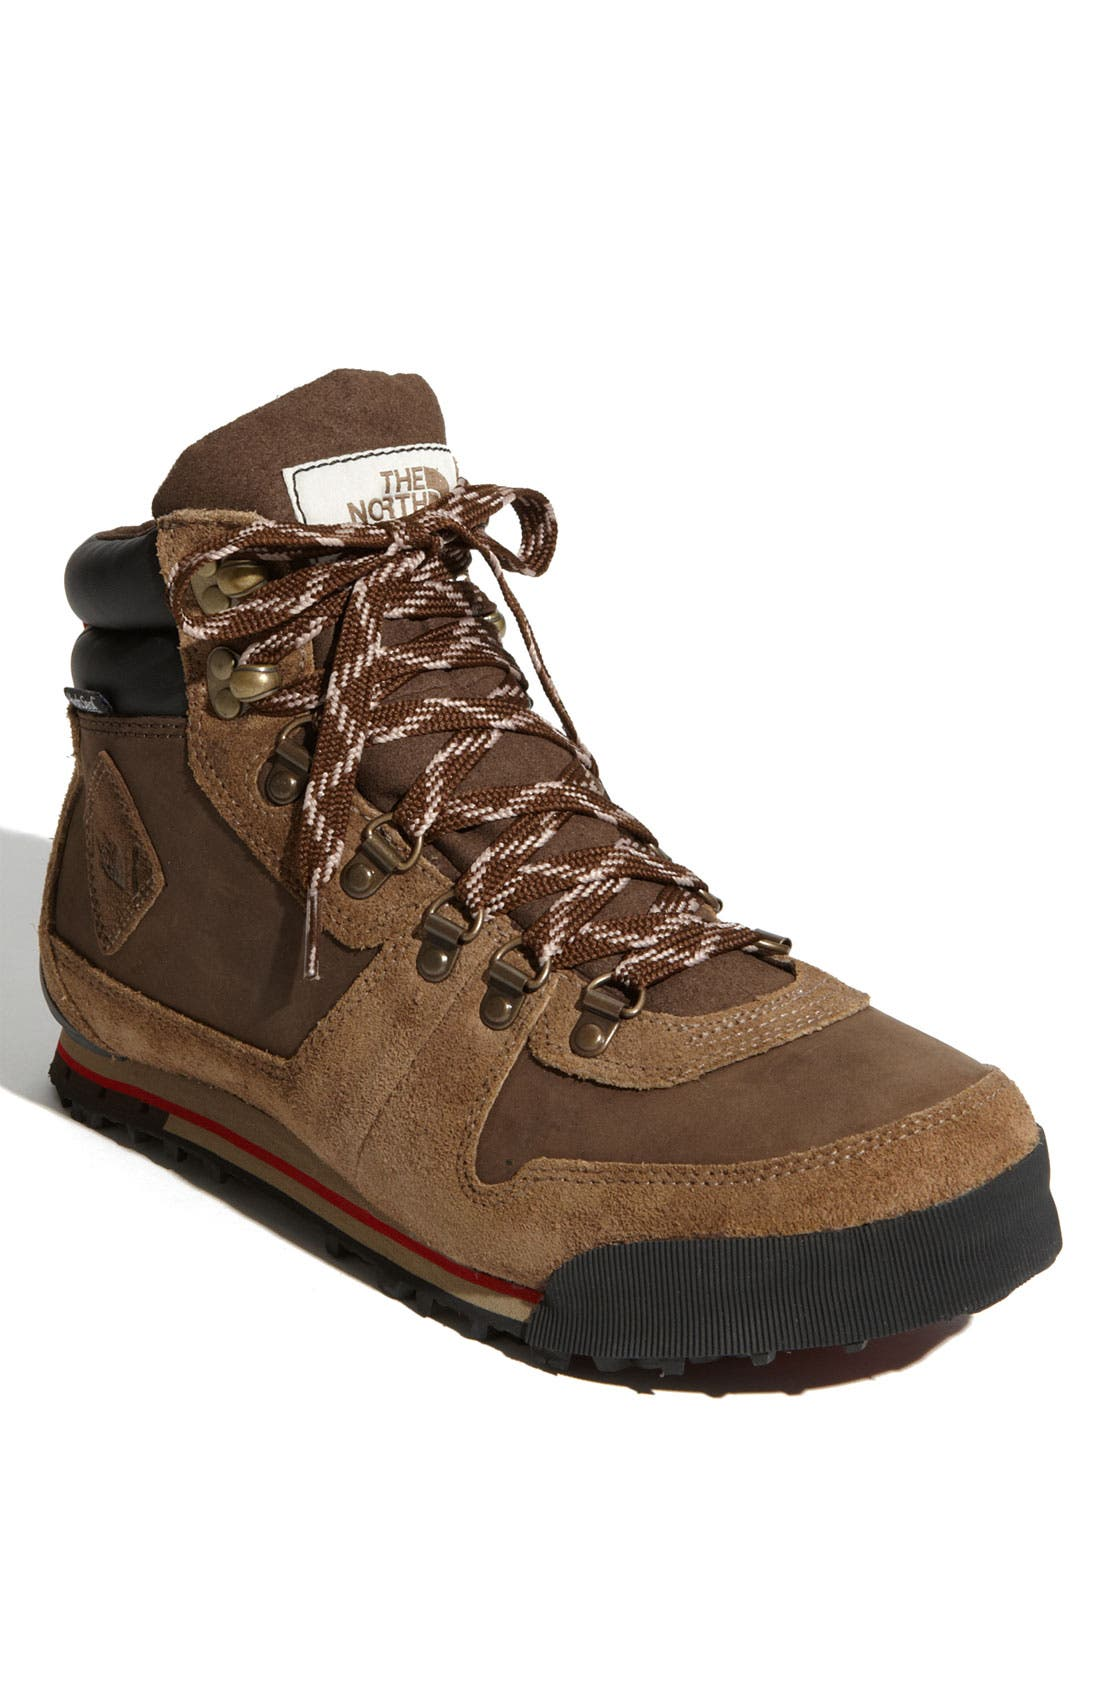 Alternate Image 1 Selected - The North Face 'Back to Berkeley' Boot